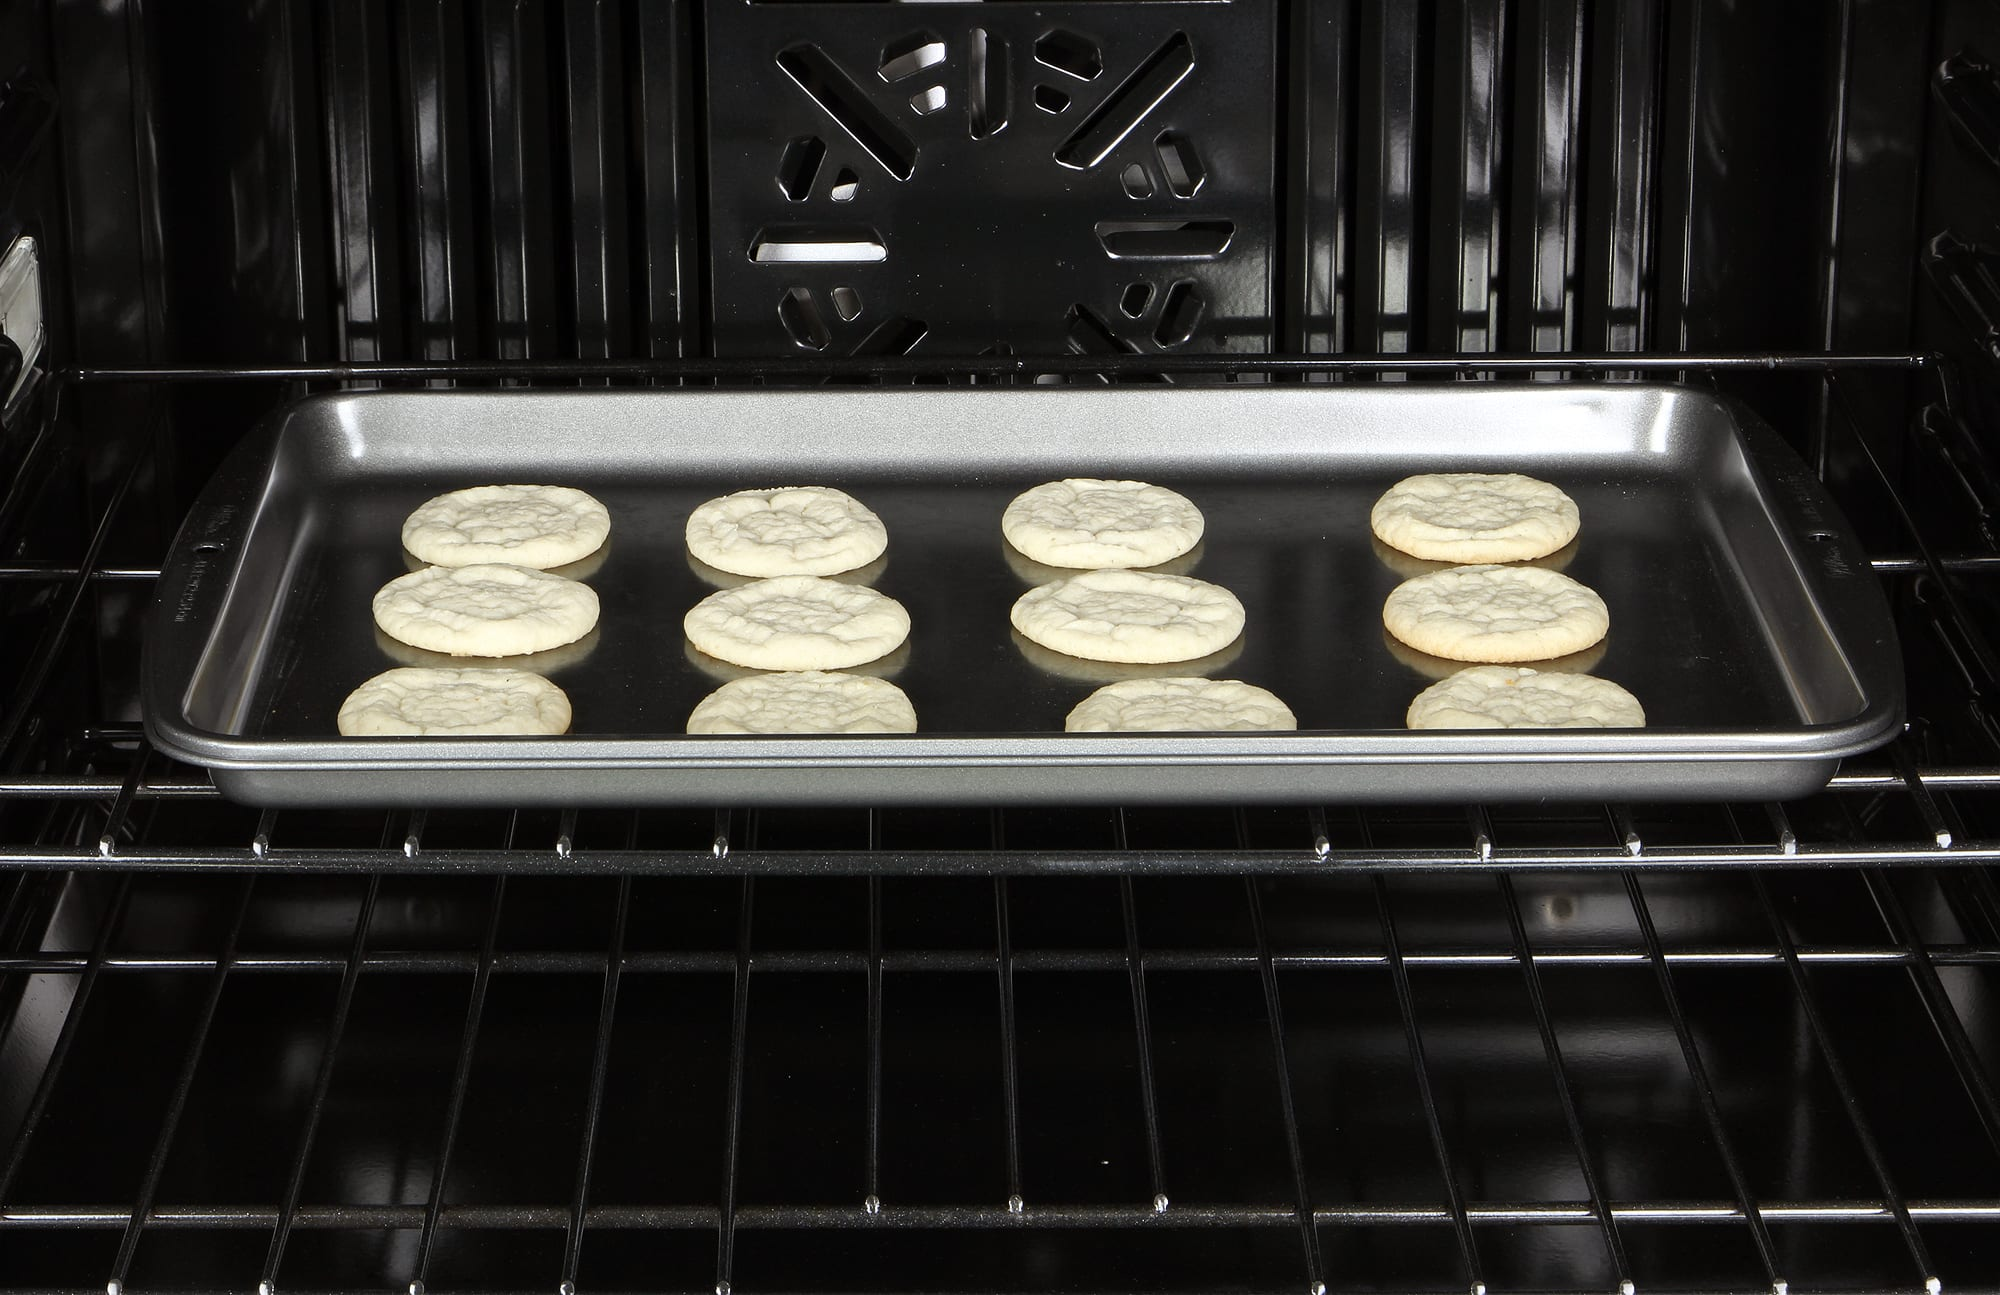 The convection setting resulted in impressive evenness in our bake tests.